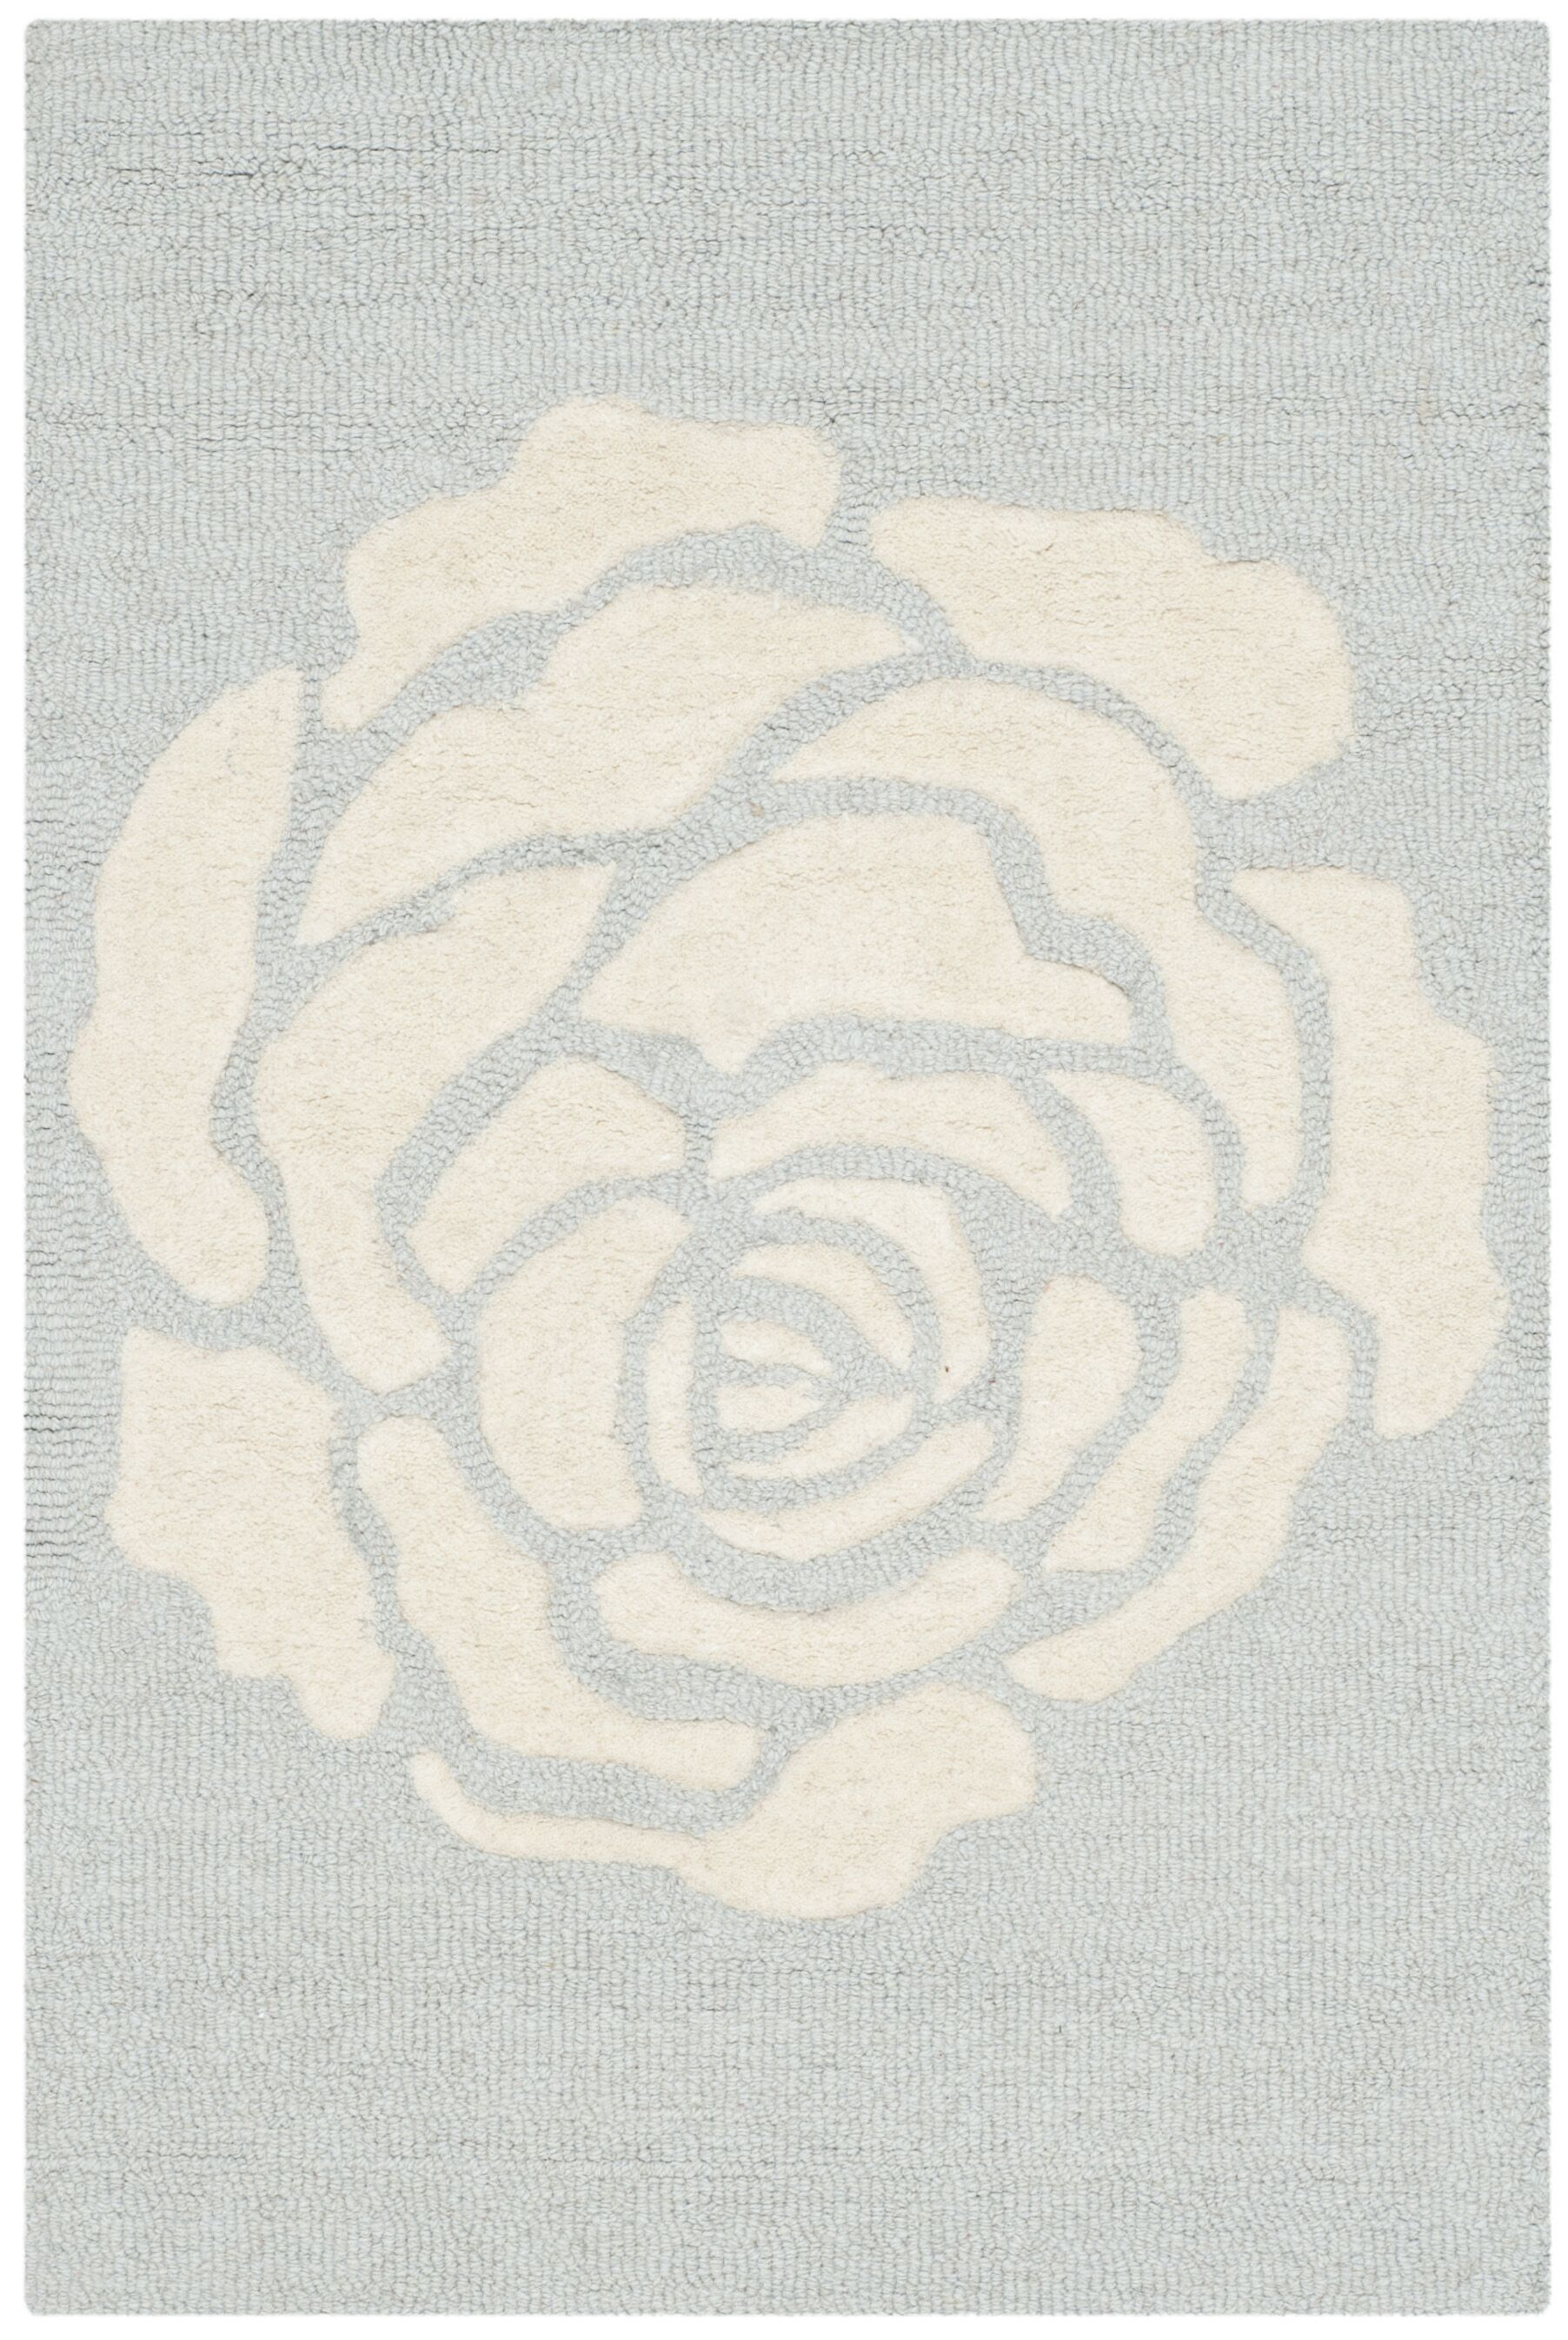 Martins Gray/Ivory Area Rug Rug Size: Rectangle 4' x 6'